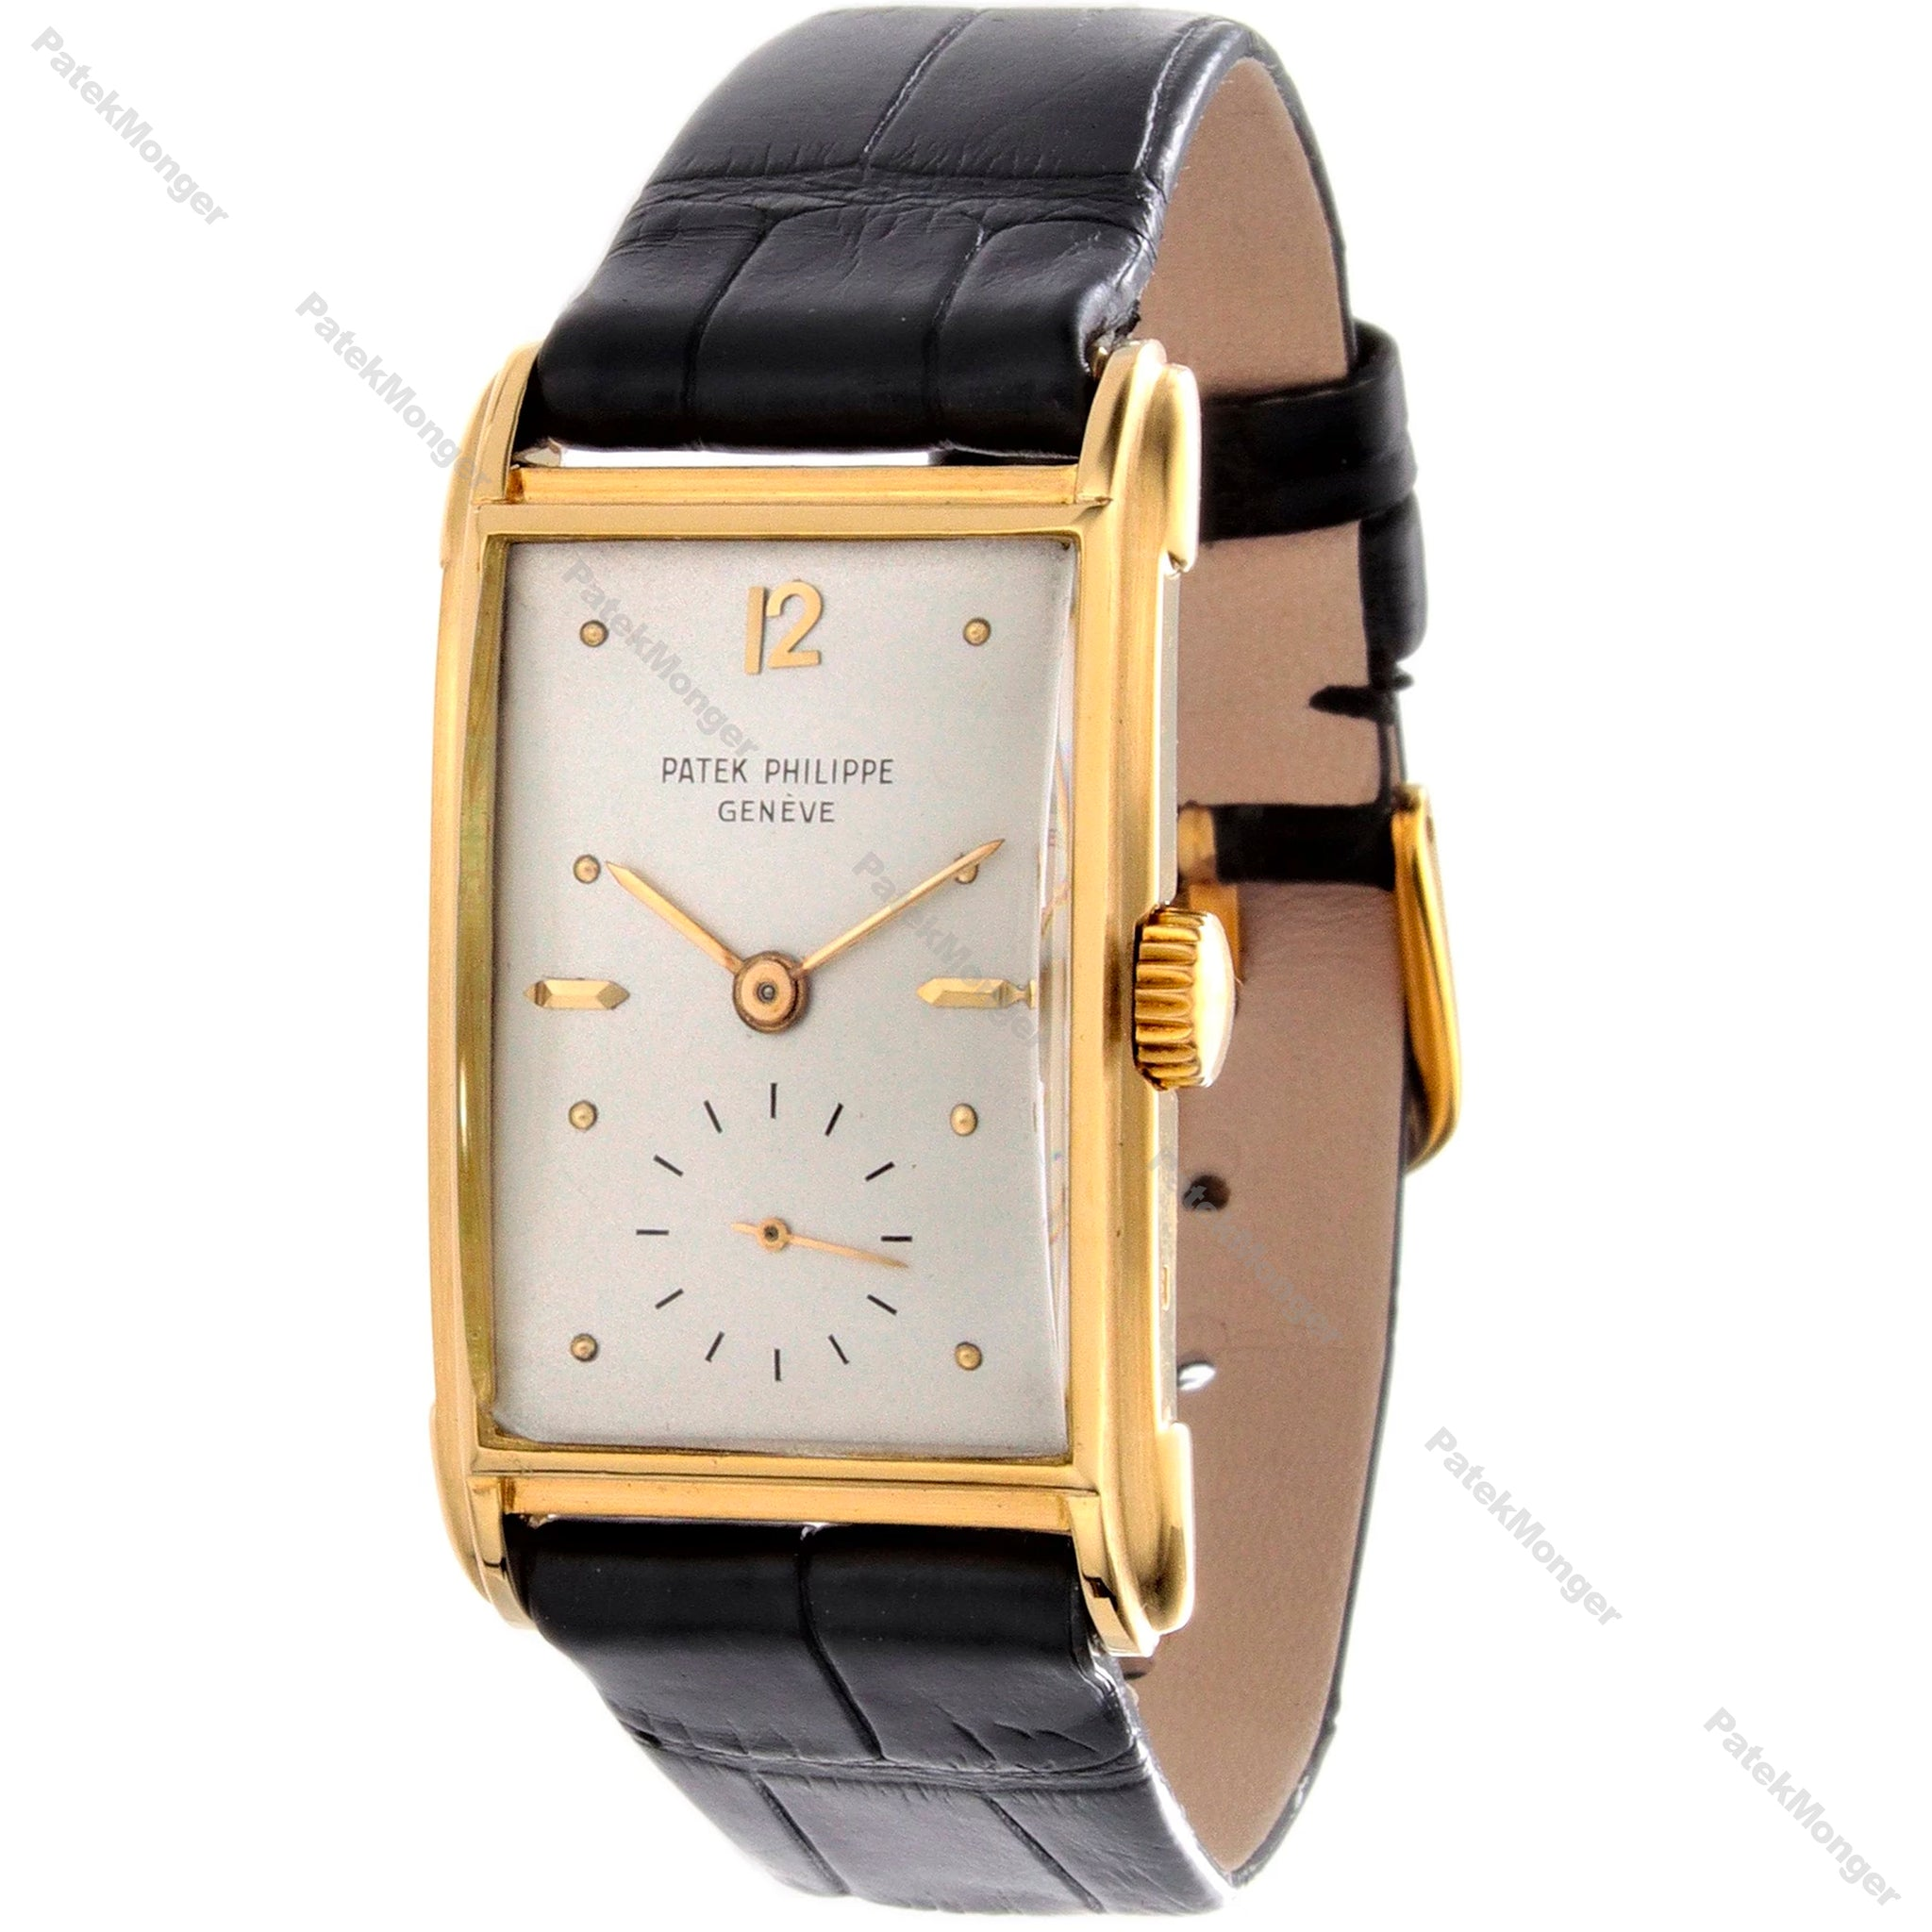 Patek Philippe 2417J Curved Domed Rectangular Watch